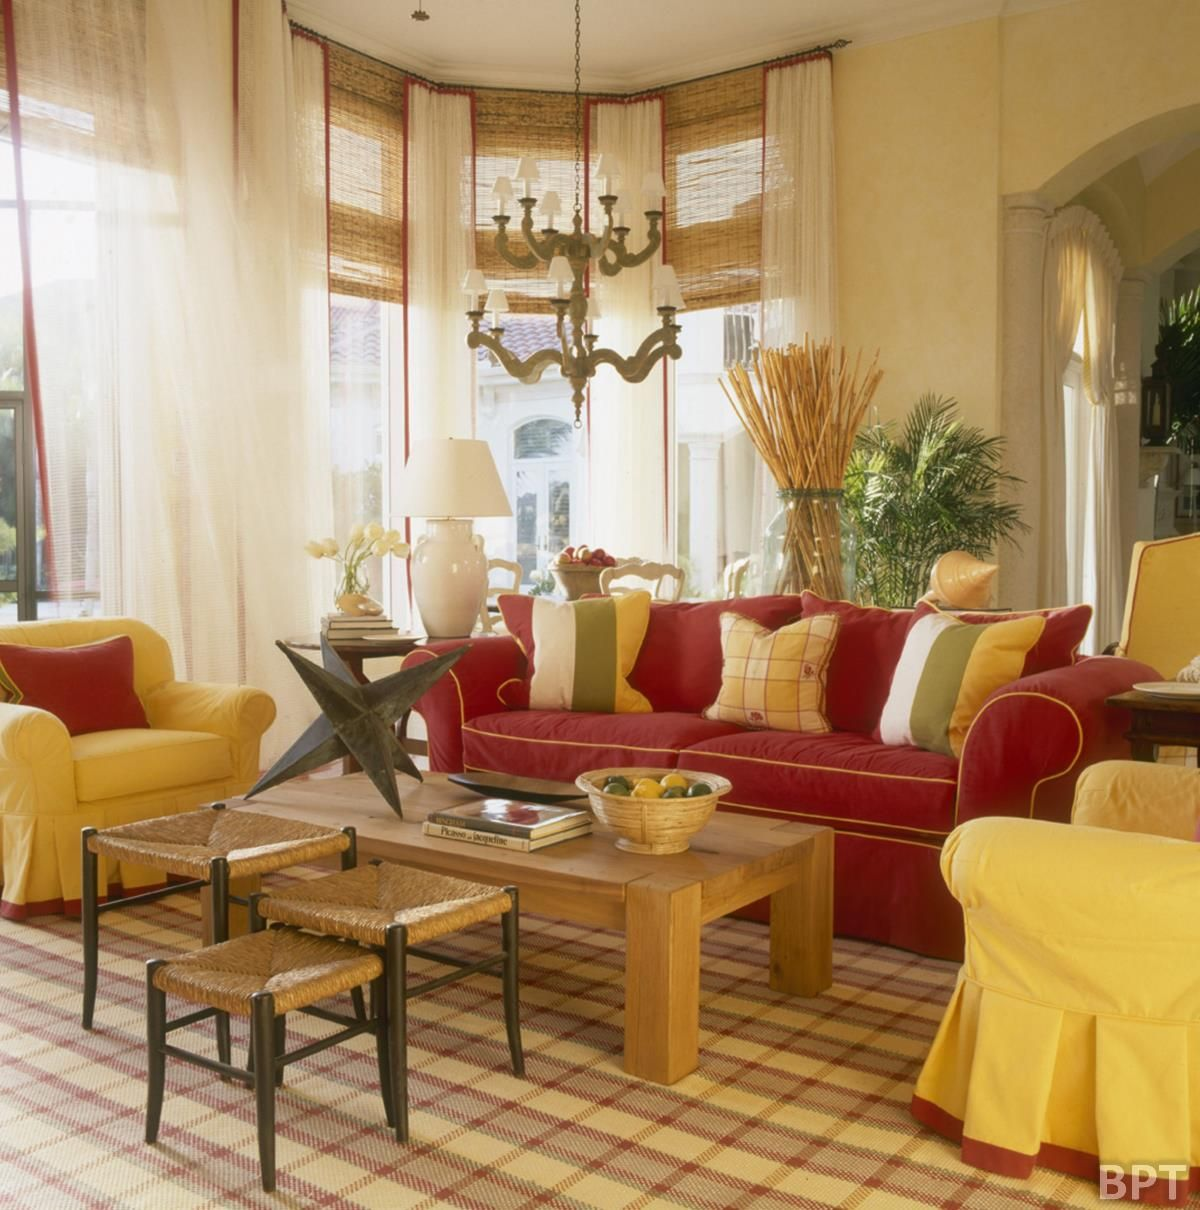 Classic Interior Living Room Design With Yellow And Red Sofa Furniture Design Ideas Above The